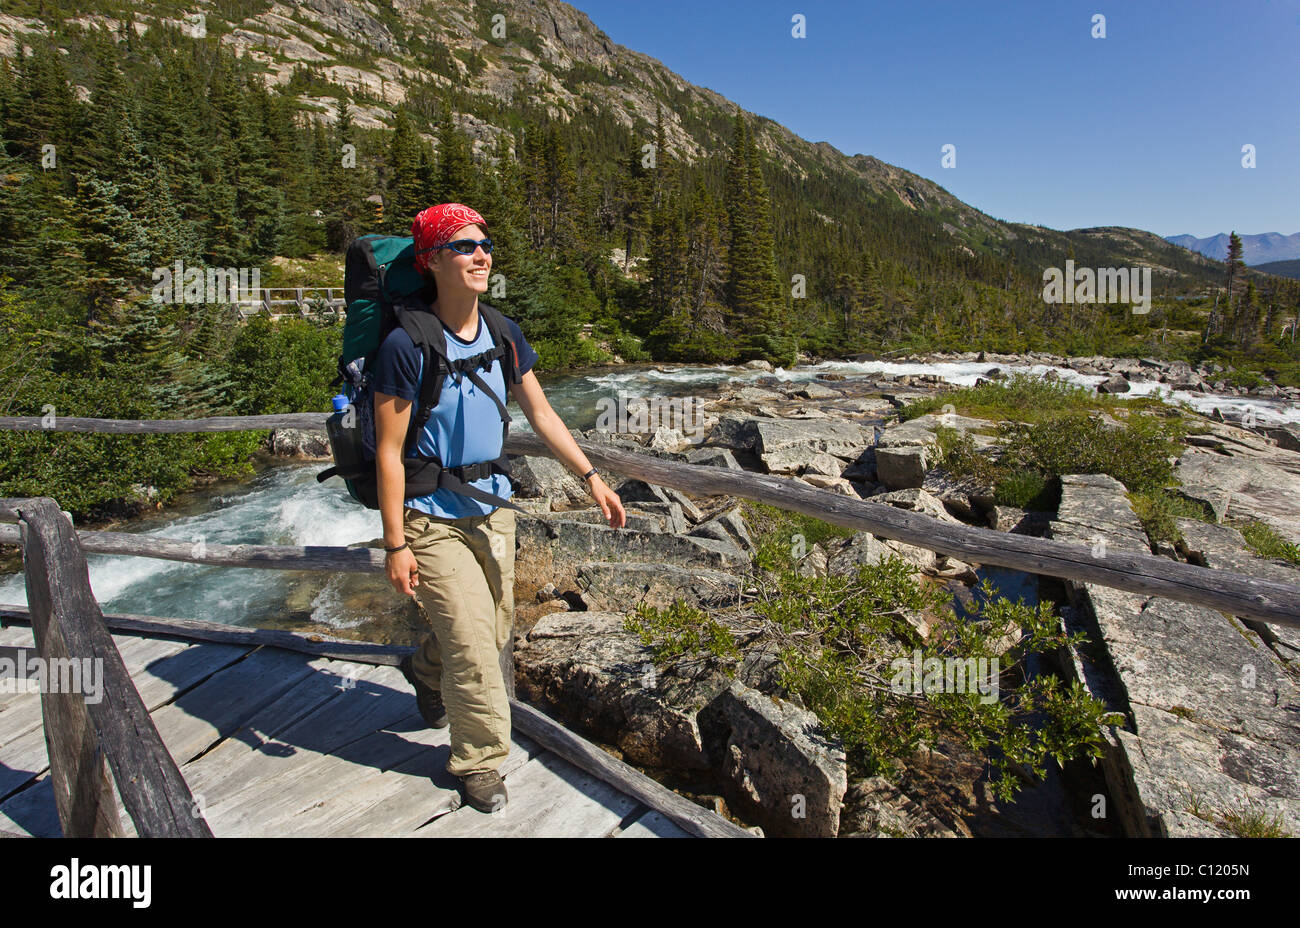 Young woman hiking, backpacking, crossing a wooden bridge, hiker with backpack, historic Chilkoot Pass, Chilkoot - Stock Image